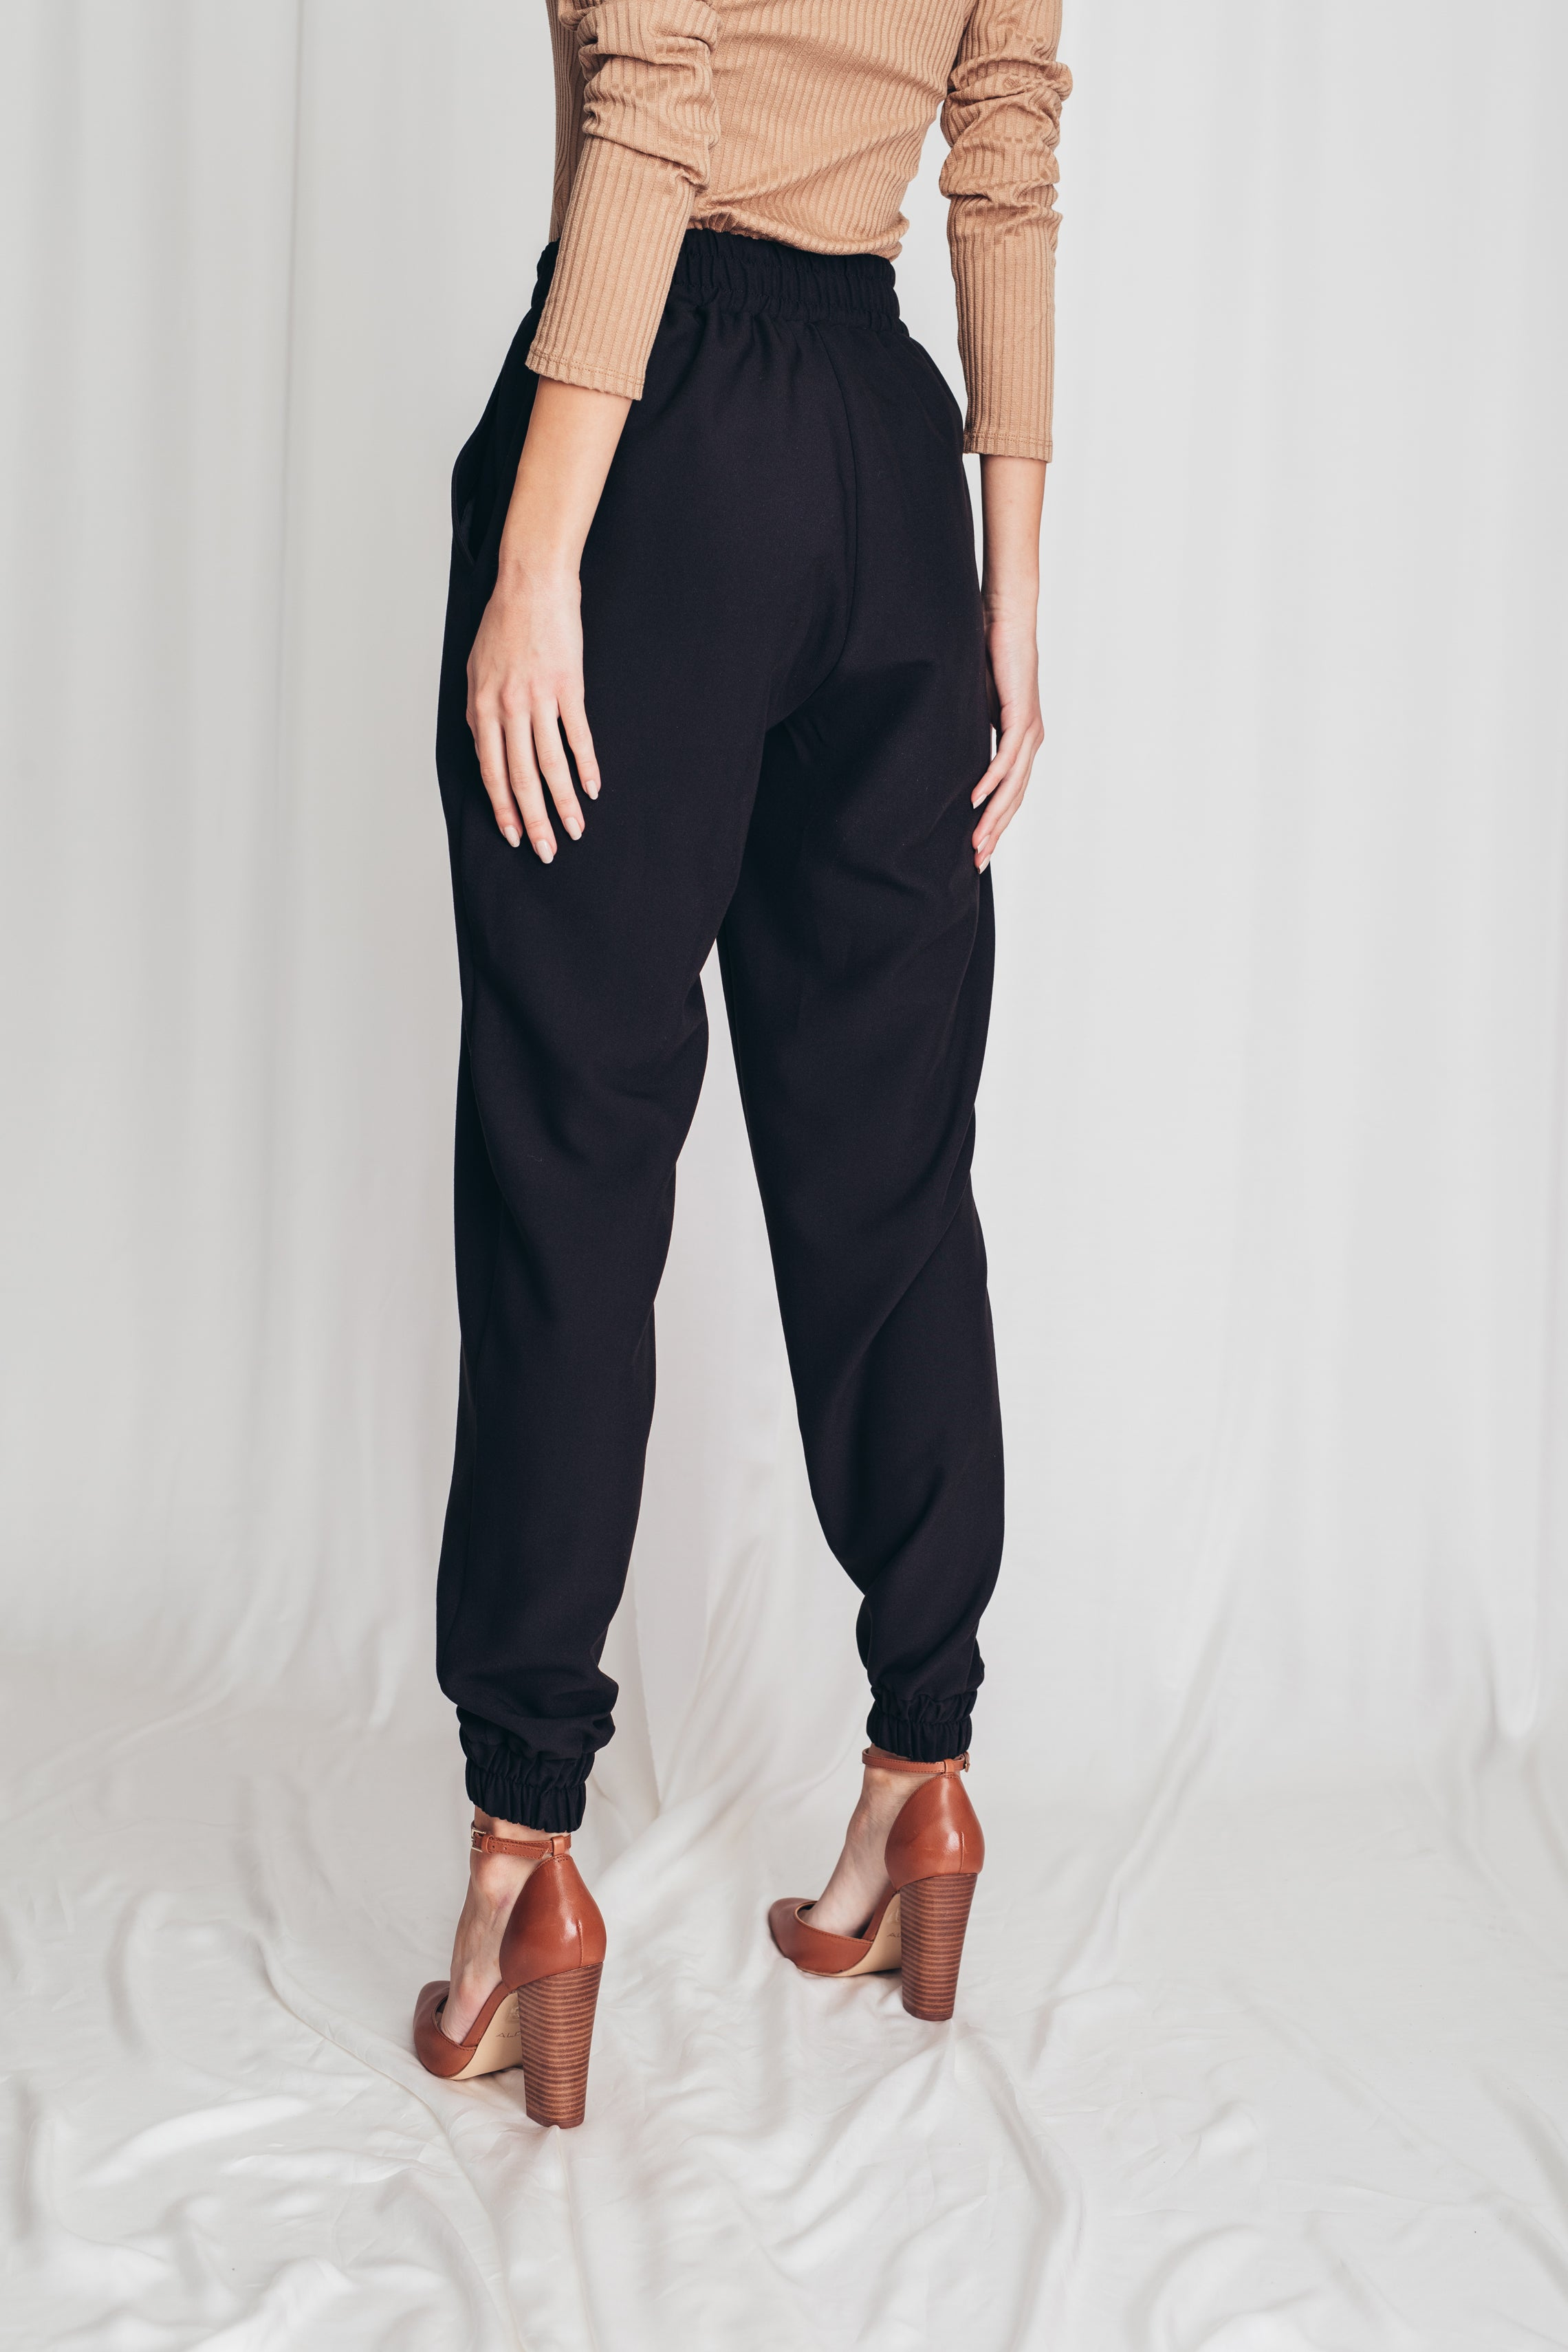 Slouchy jogging trousers